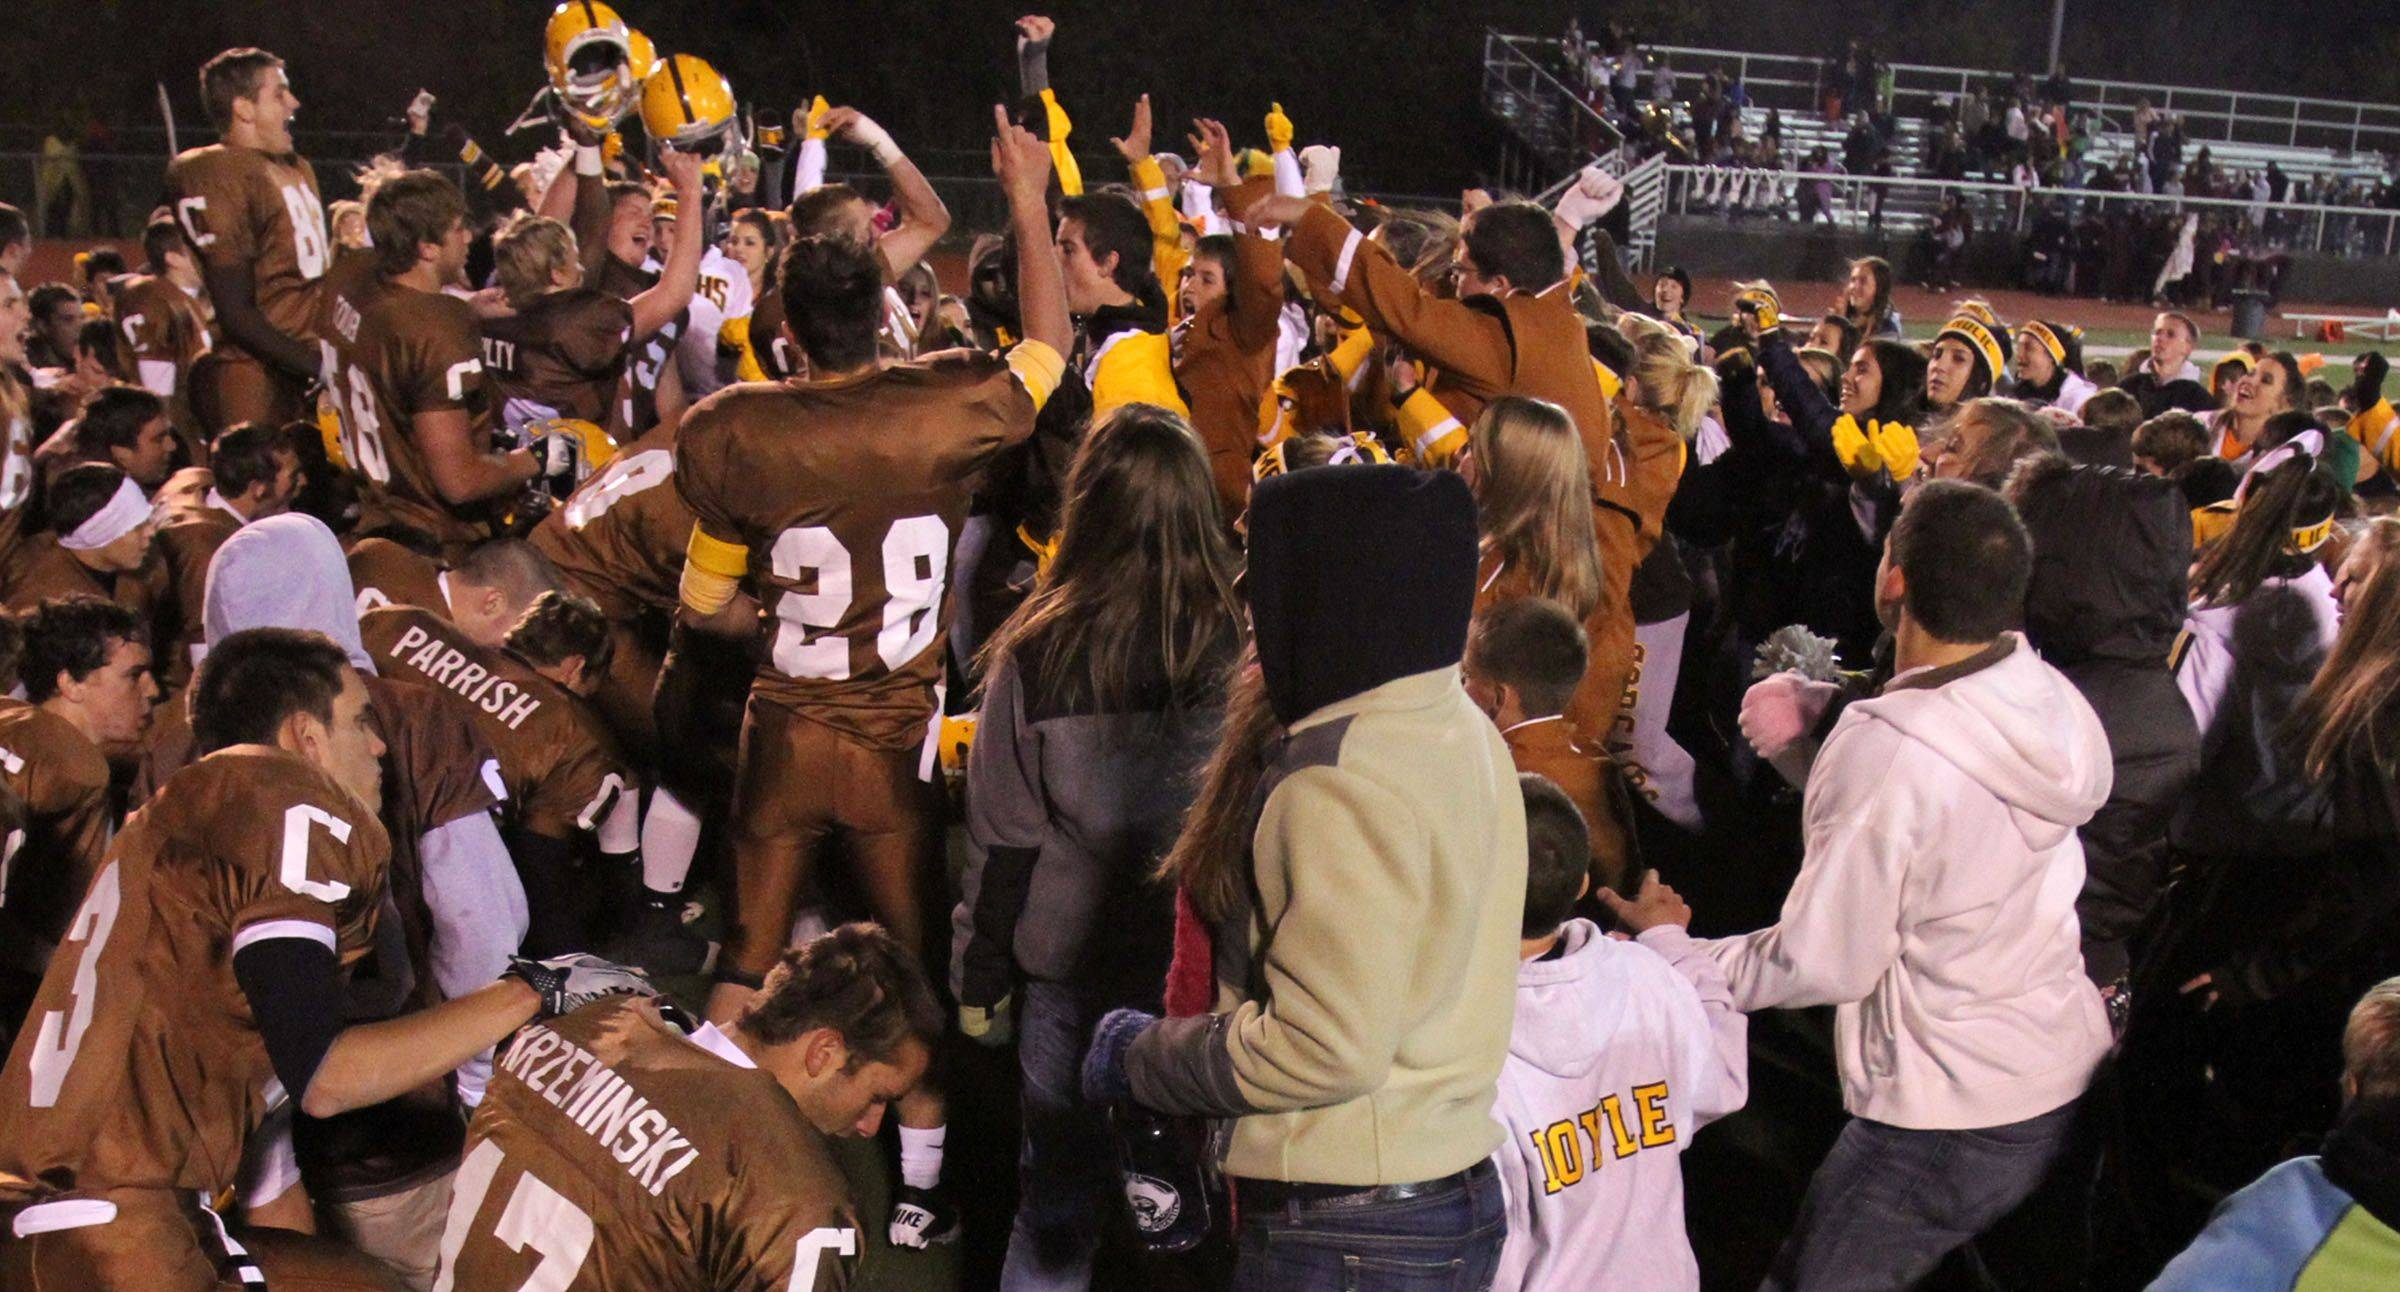 Carmel players and student fans celebrates winning 55-7 over Elgin in round one of Class 7A state playoffs at Carmel in Mundelein on Friday, October 29.